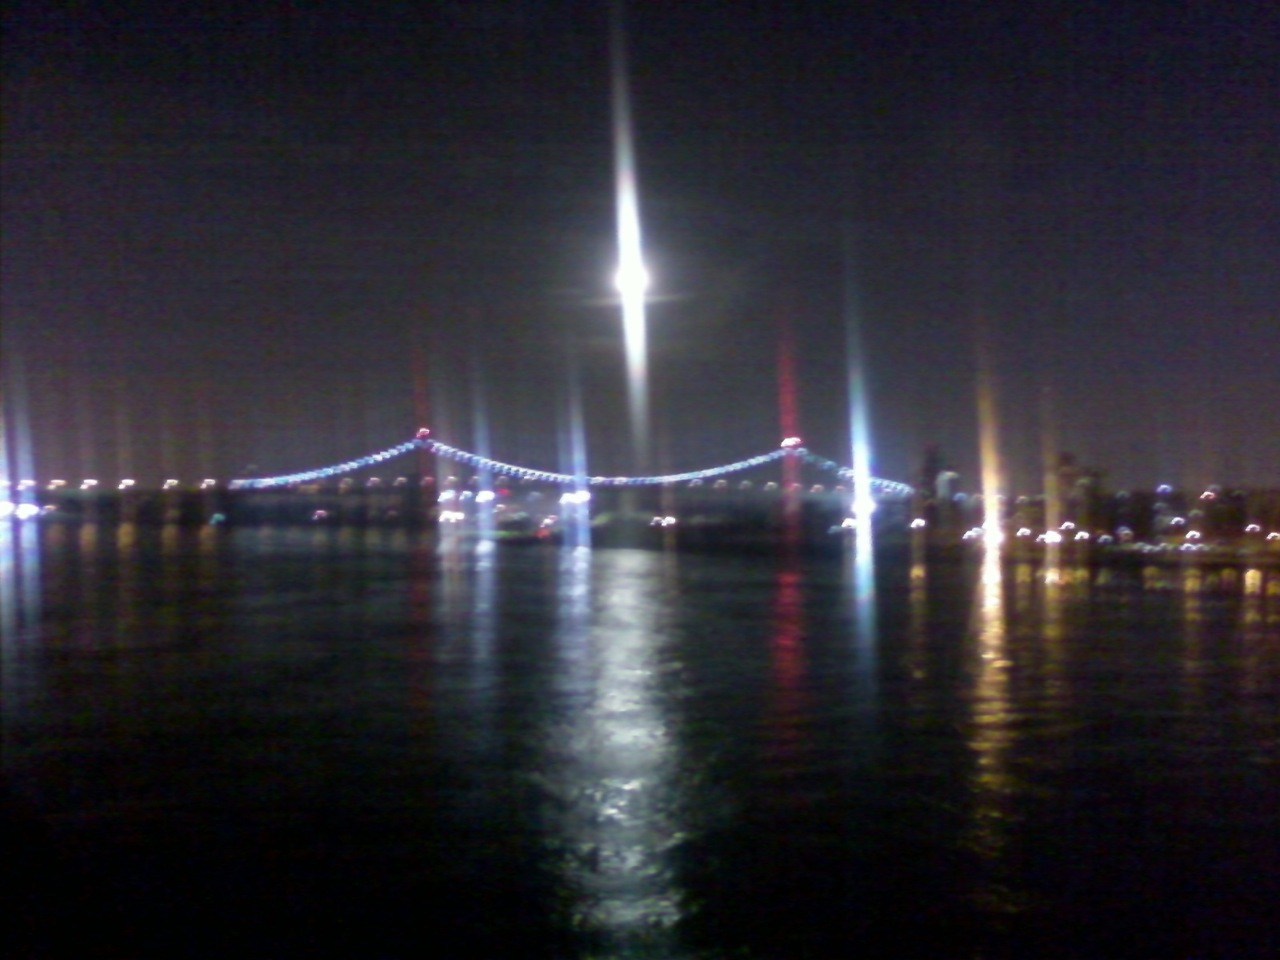 It may be a crummy cell phone photo, but I don't think I could ever get sick of seeing this view each night! The reflection of the city lights from the building and bridges on the water of the East River is gorgeous. Thanks to little Mr. Scooter we get to see it each night when we go on our nightly walk too!